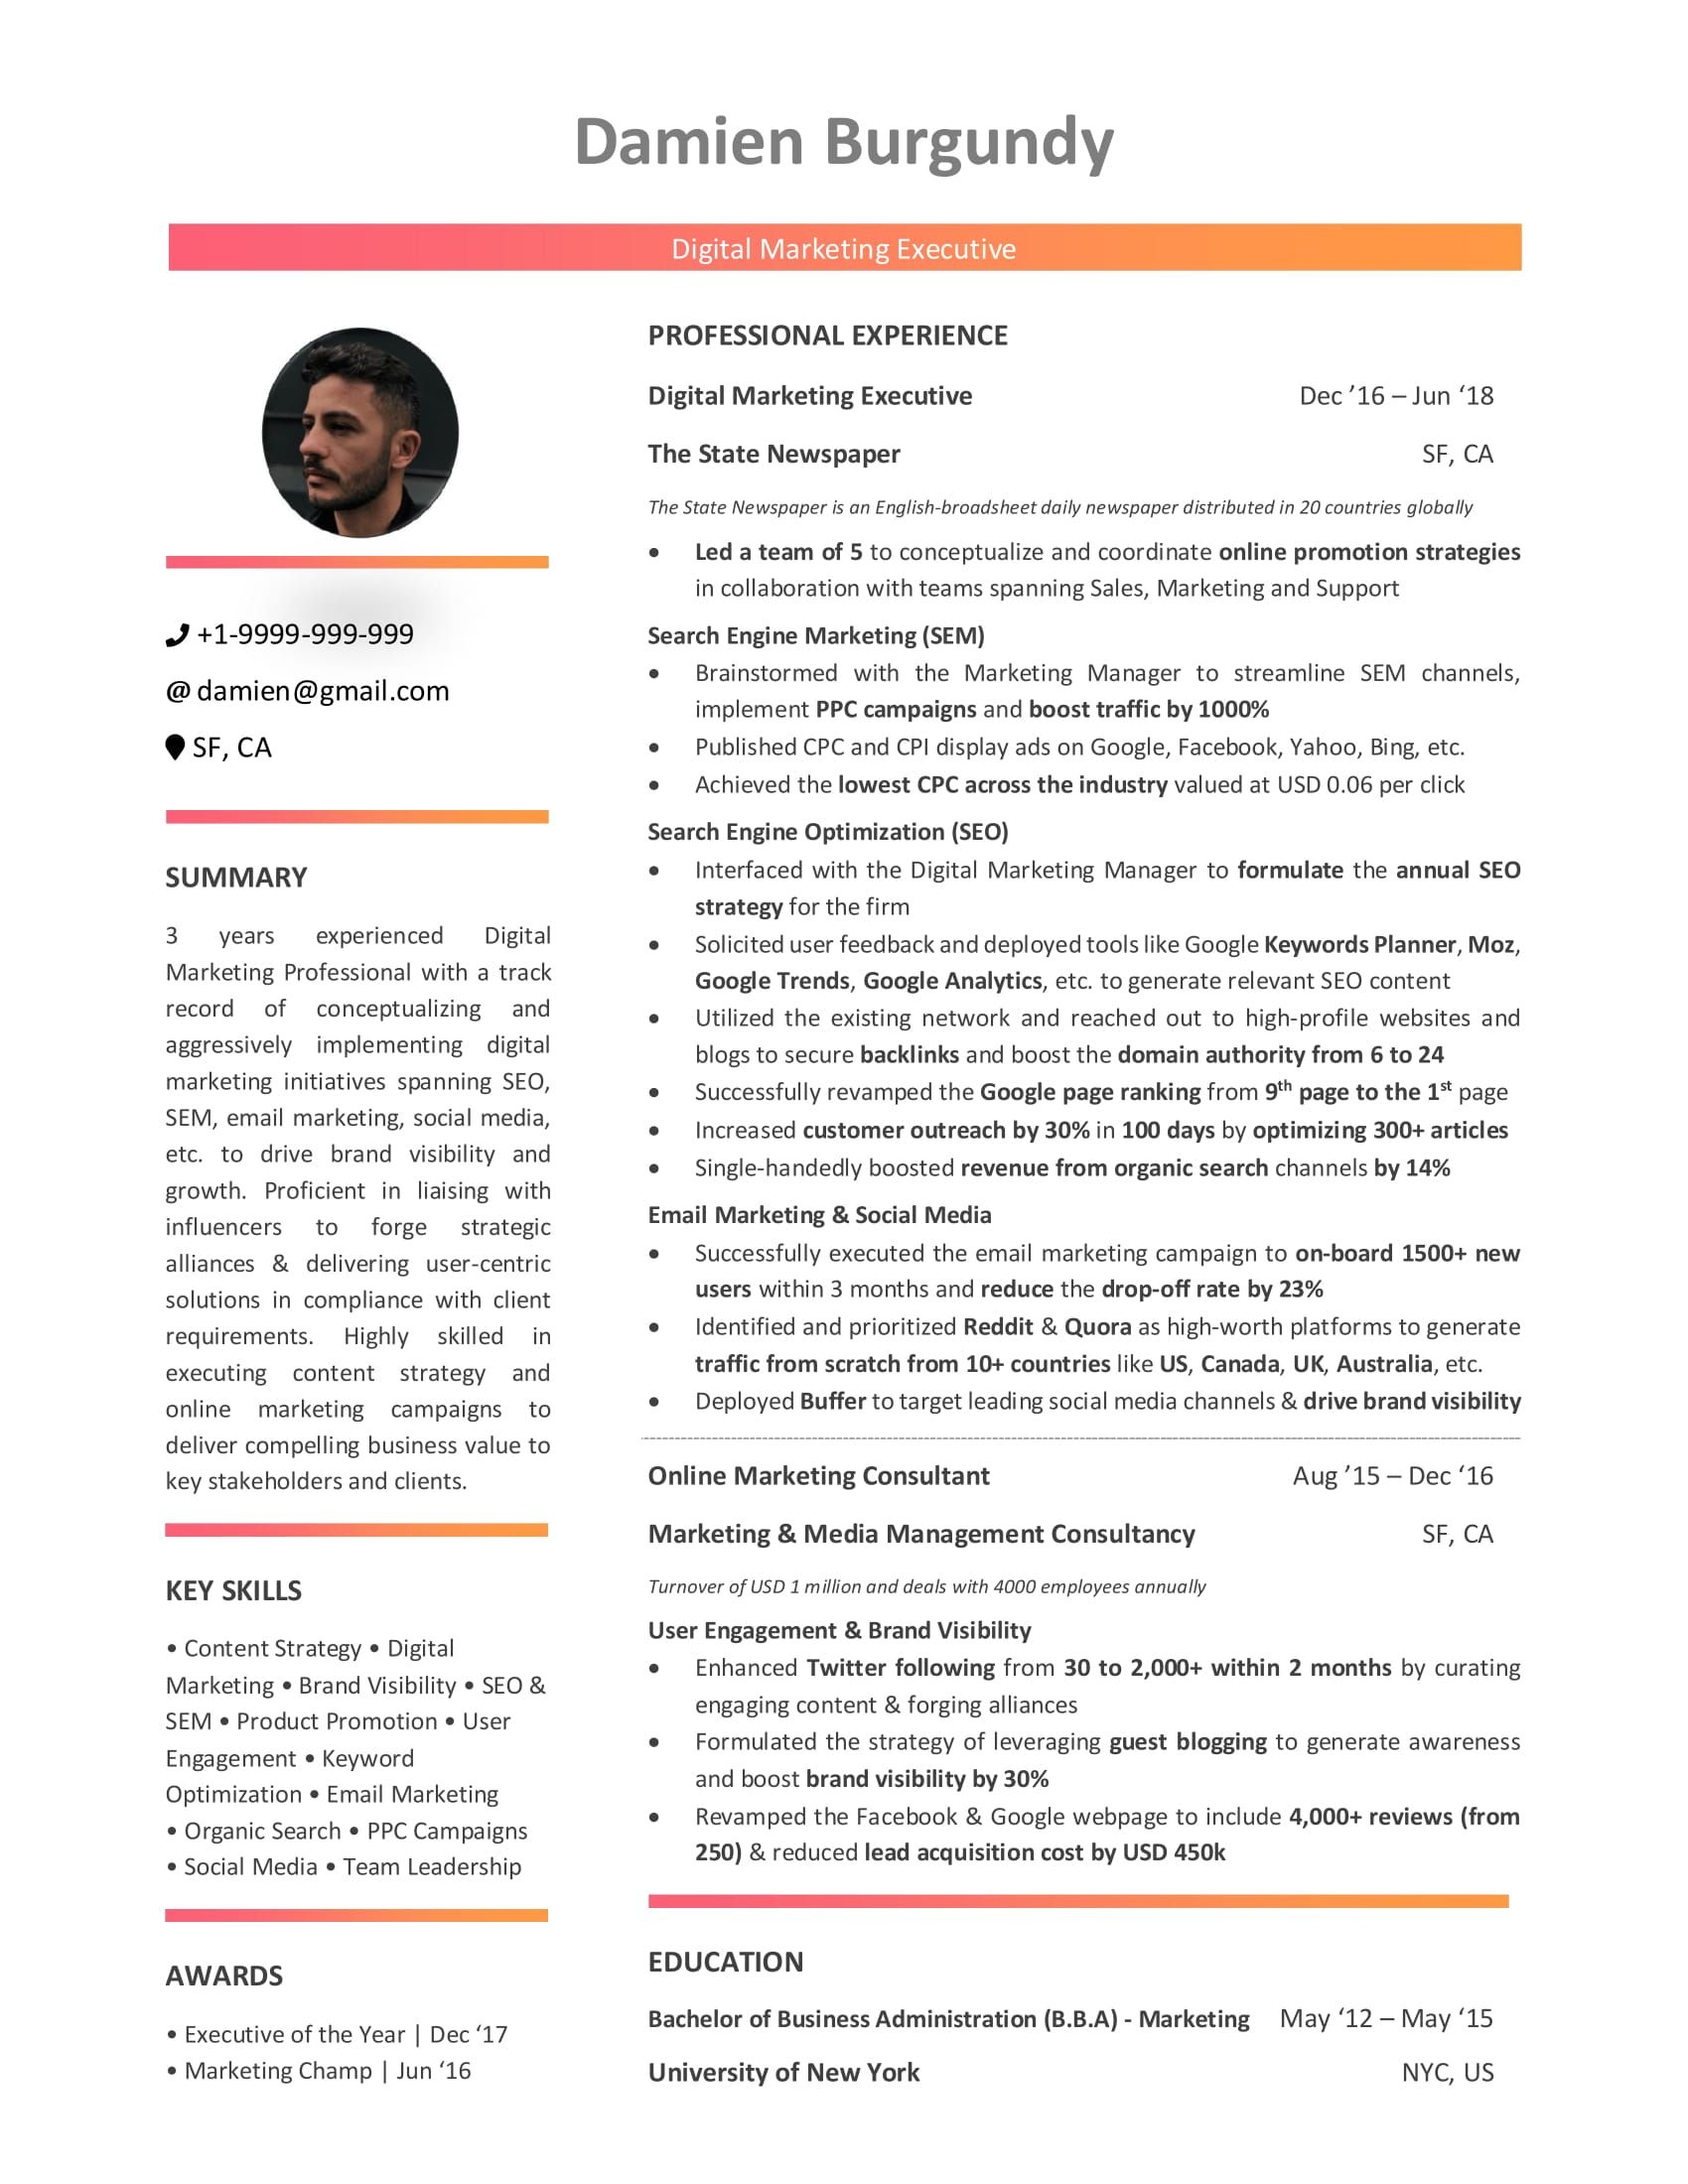 Digital Marketing Resume 10 Step Beginner S Guide With